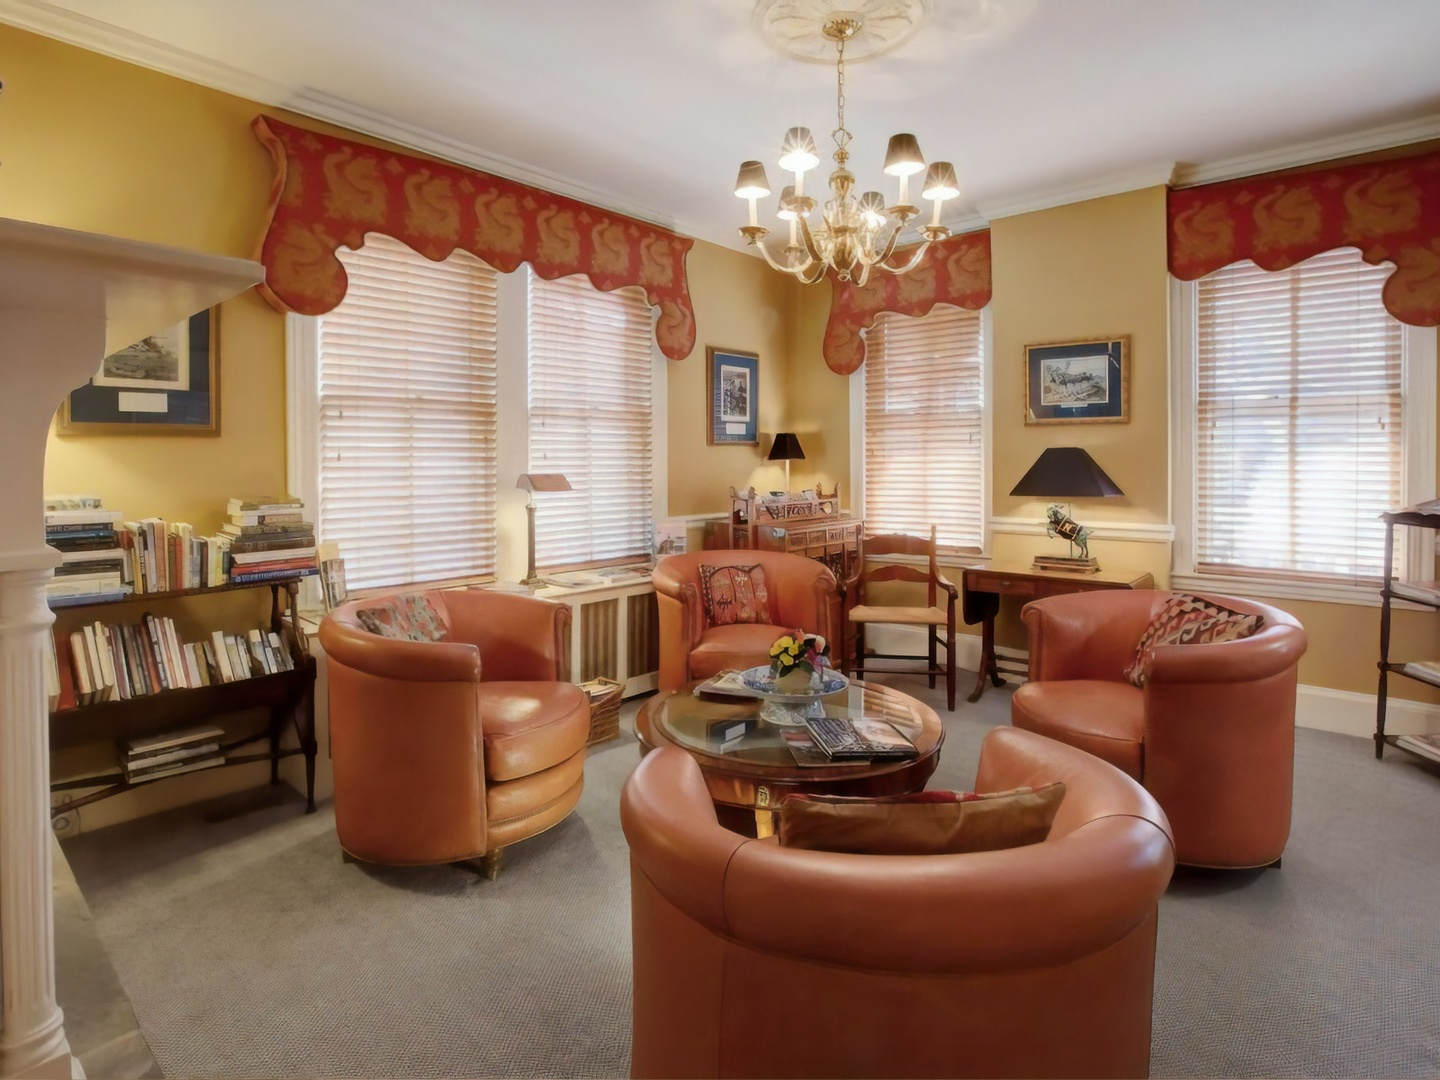 A living room filled with furniture and a large window at Flag House Inn.